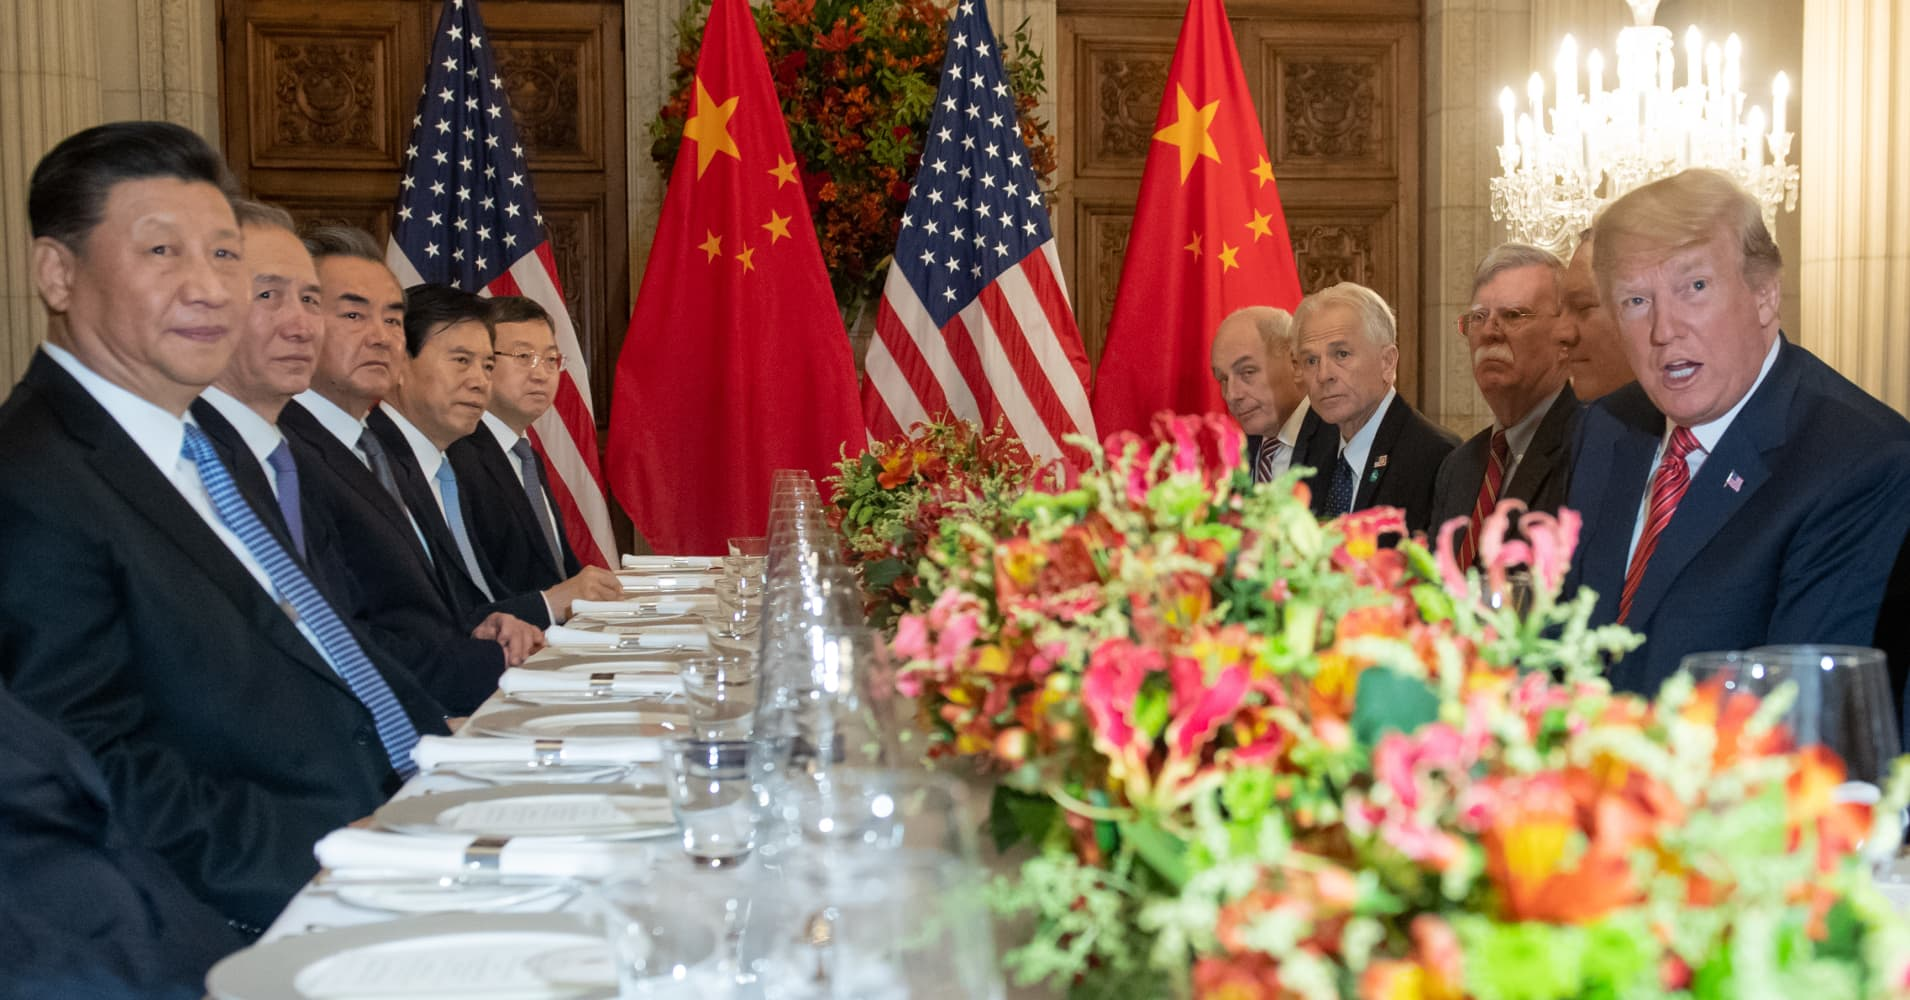 China's Xi issues a message for Trump: We've got to cooperate